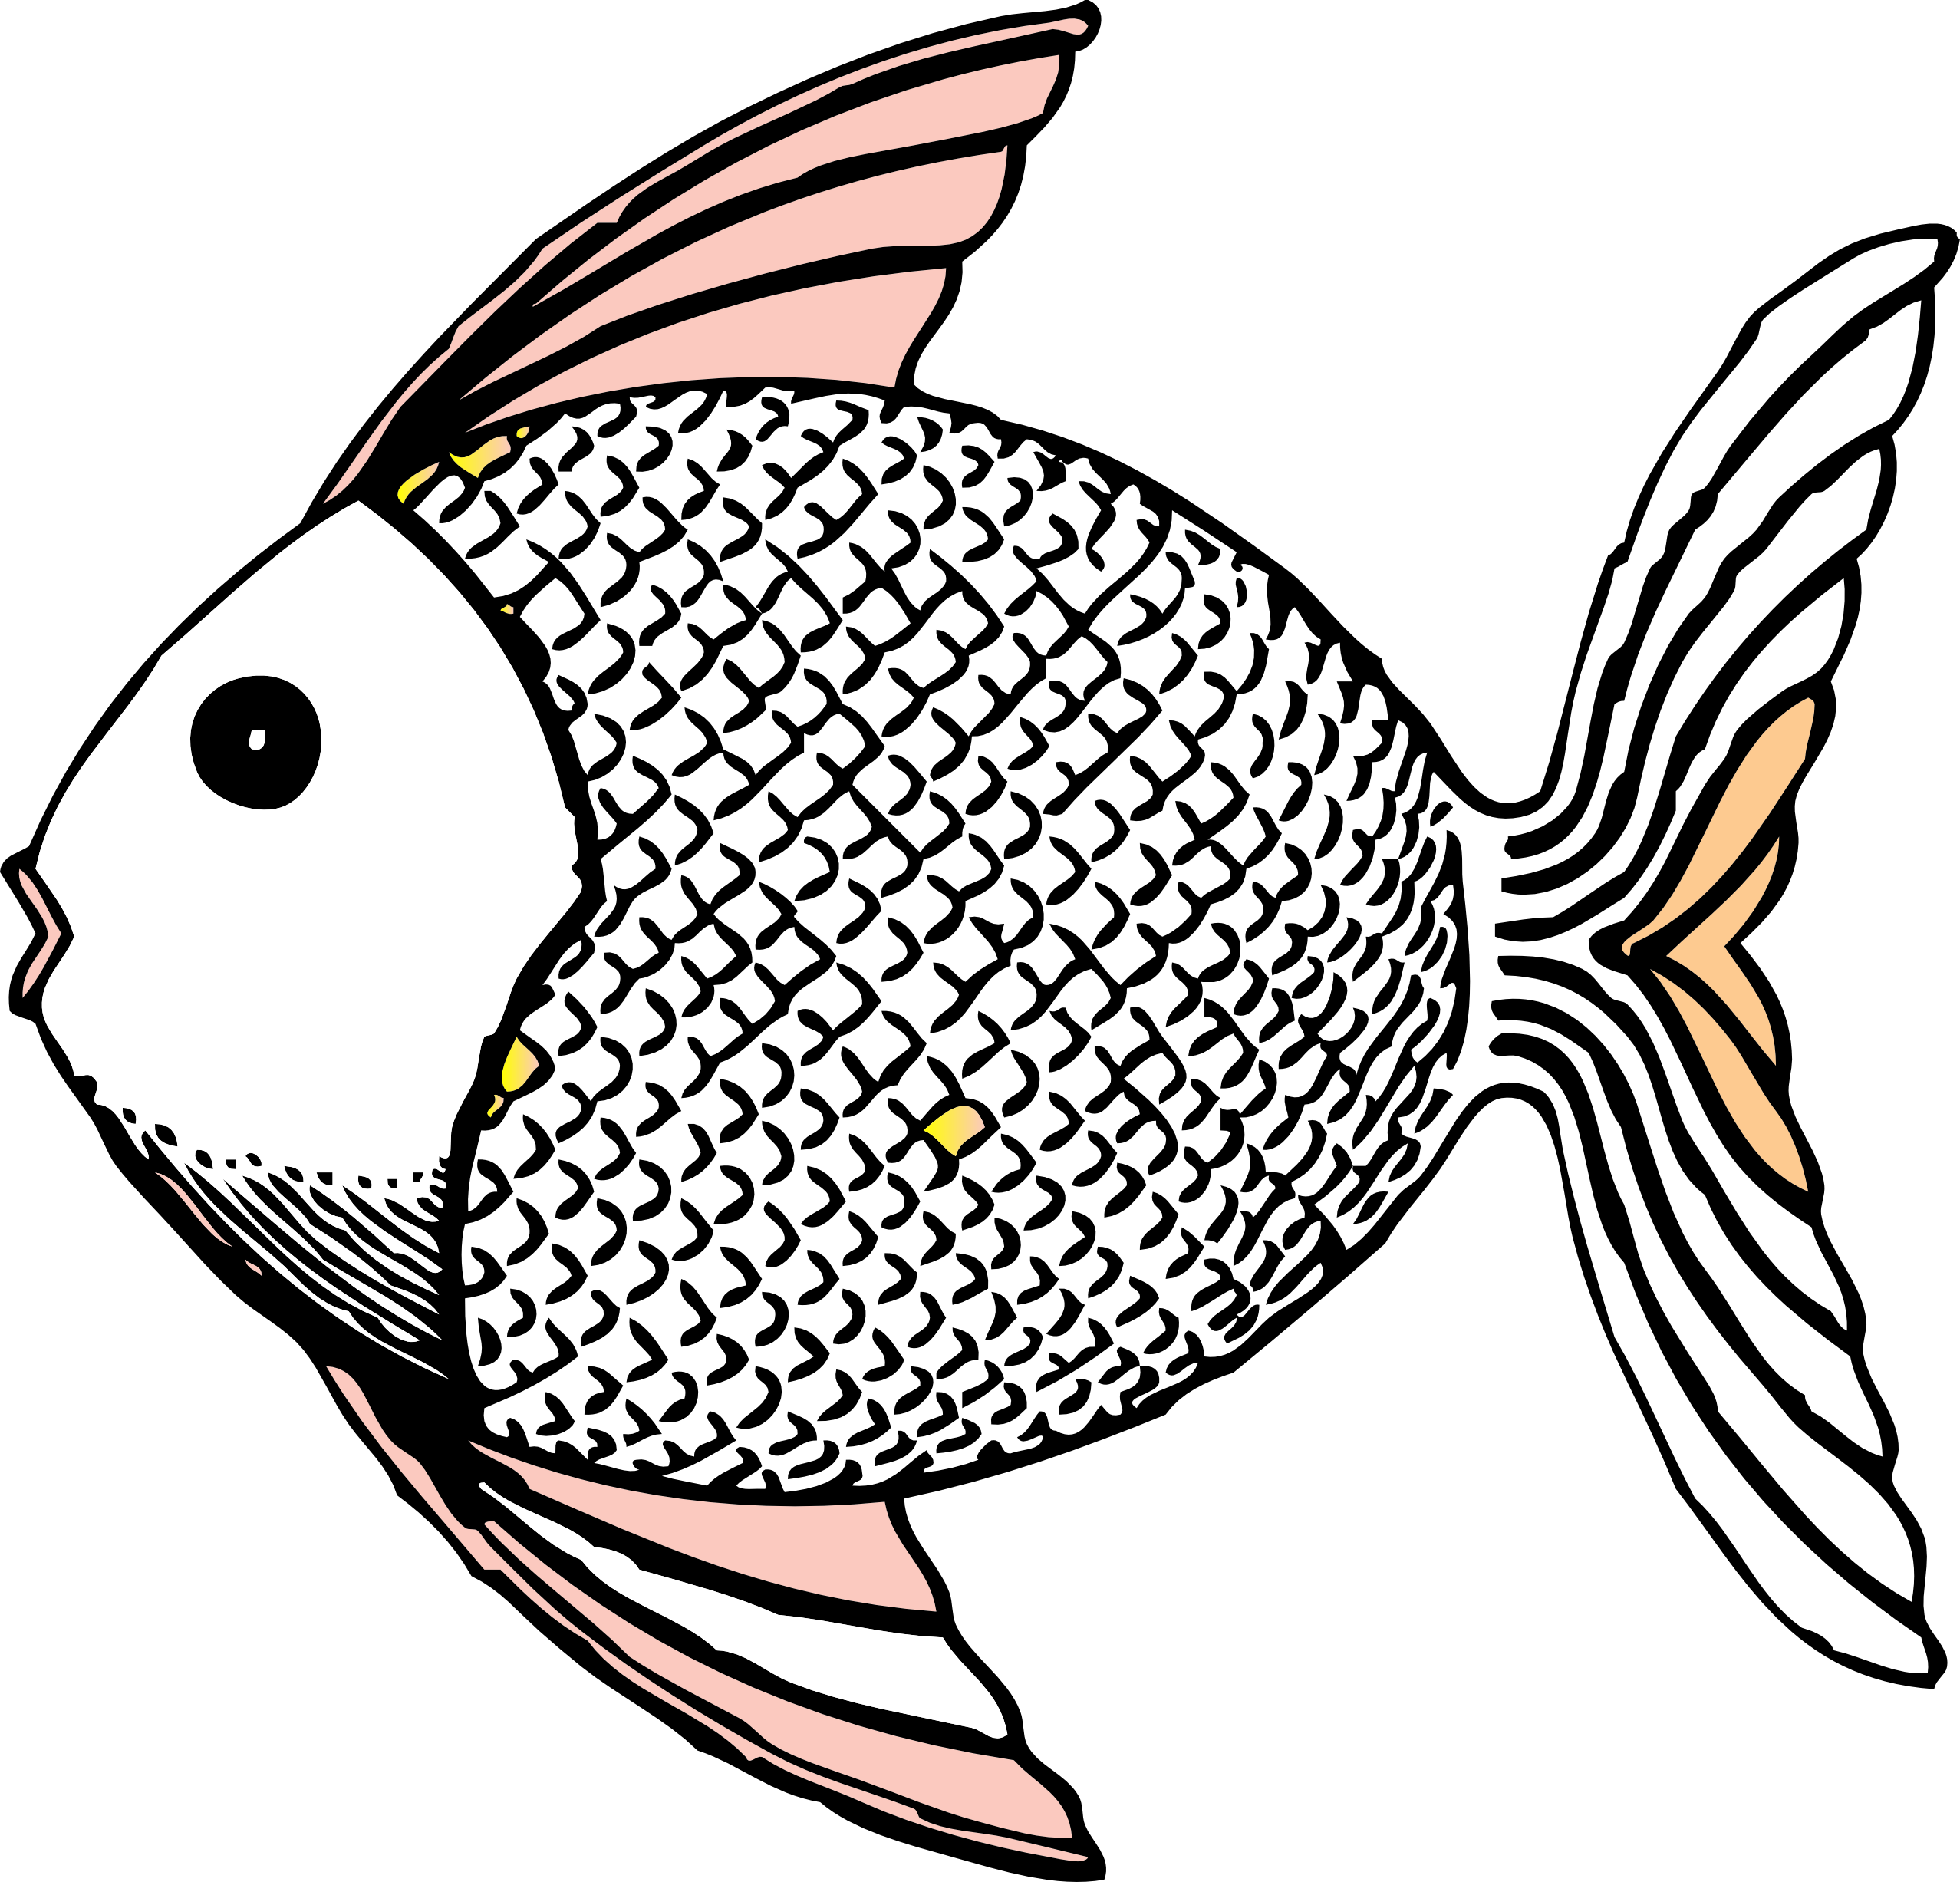 Coral reef fish clipart printable clip free stock Fish Clip Art Black and White | tropical fish black white line art ... clip free stock